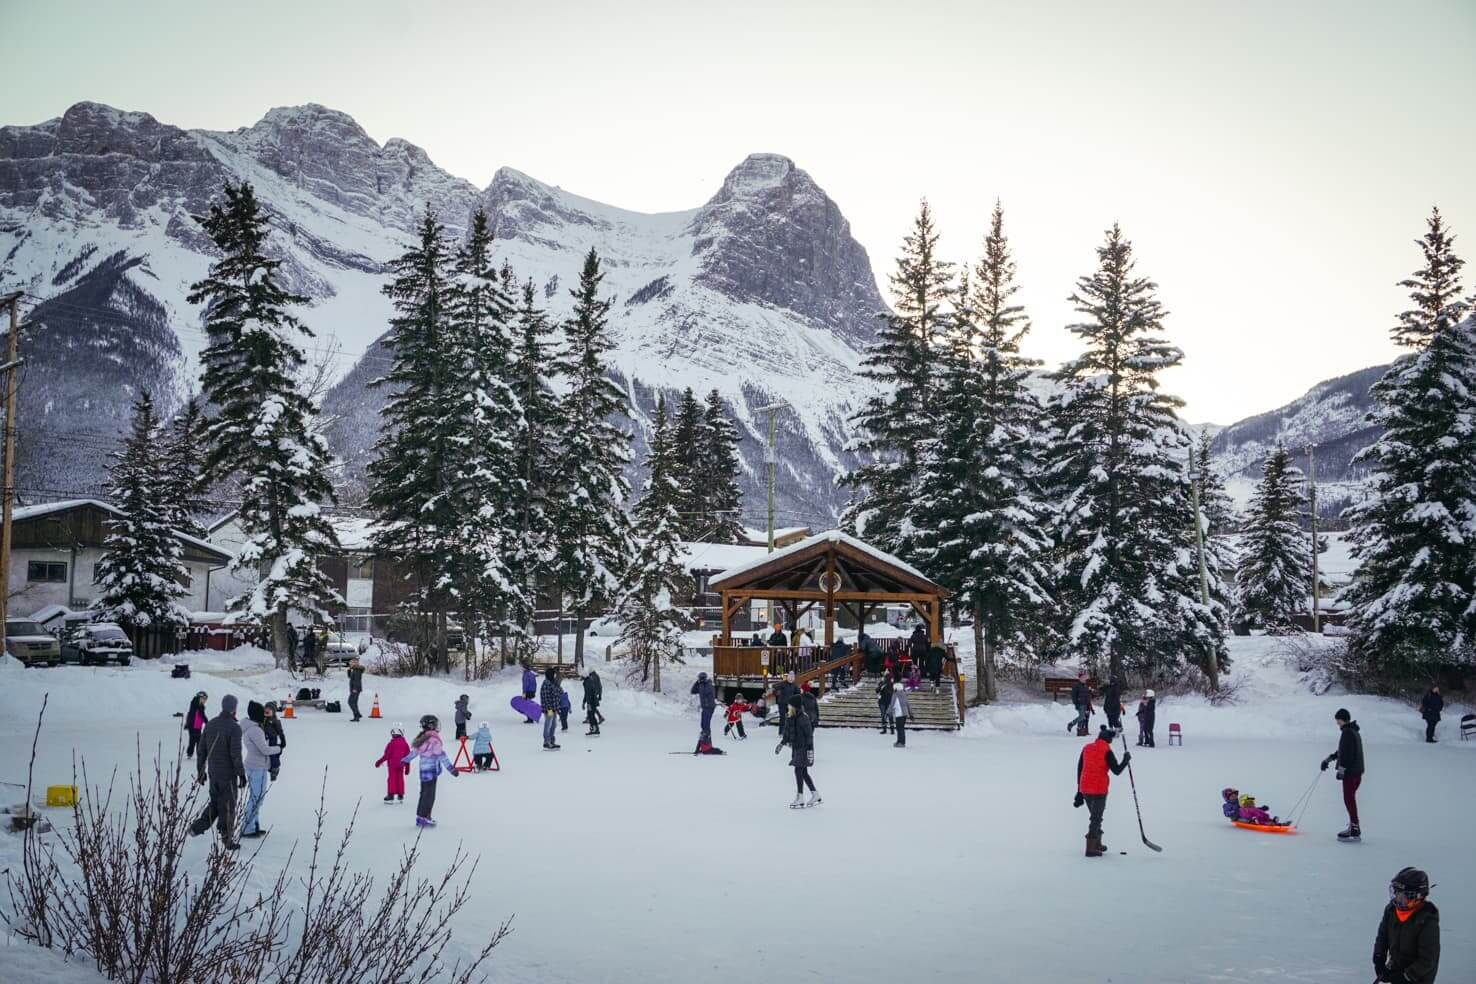 Ice skating in Canmore